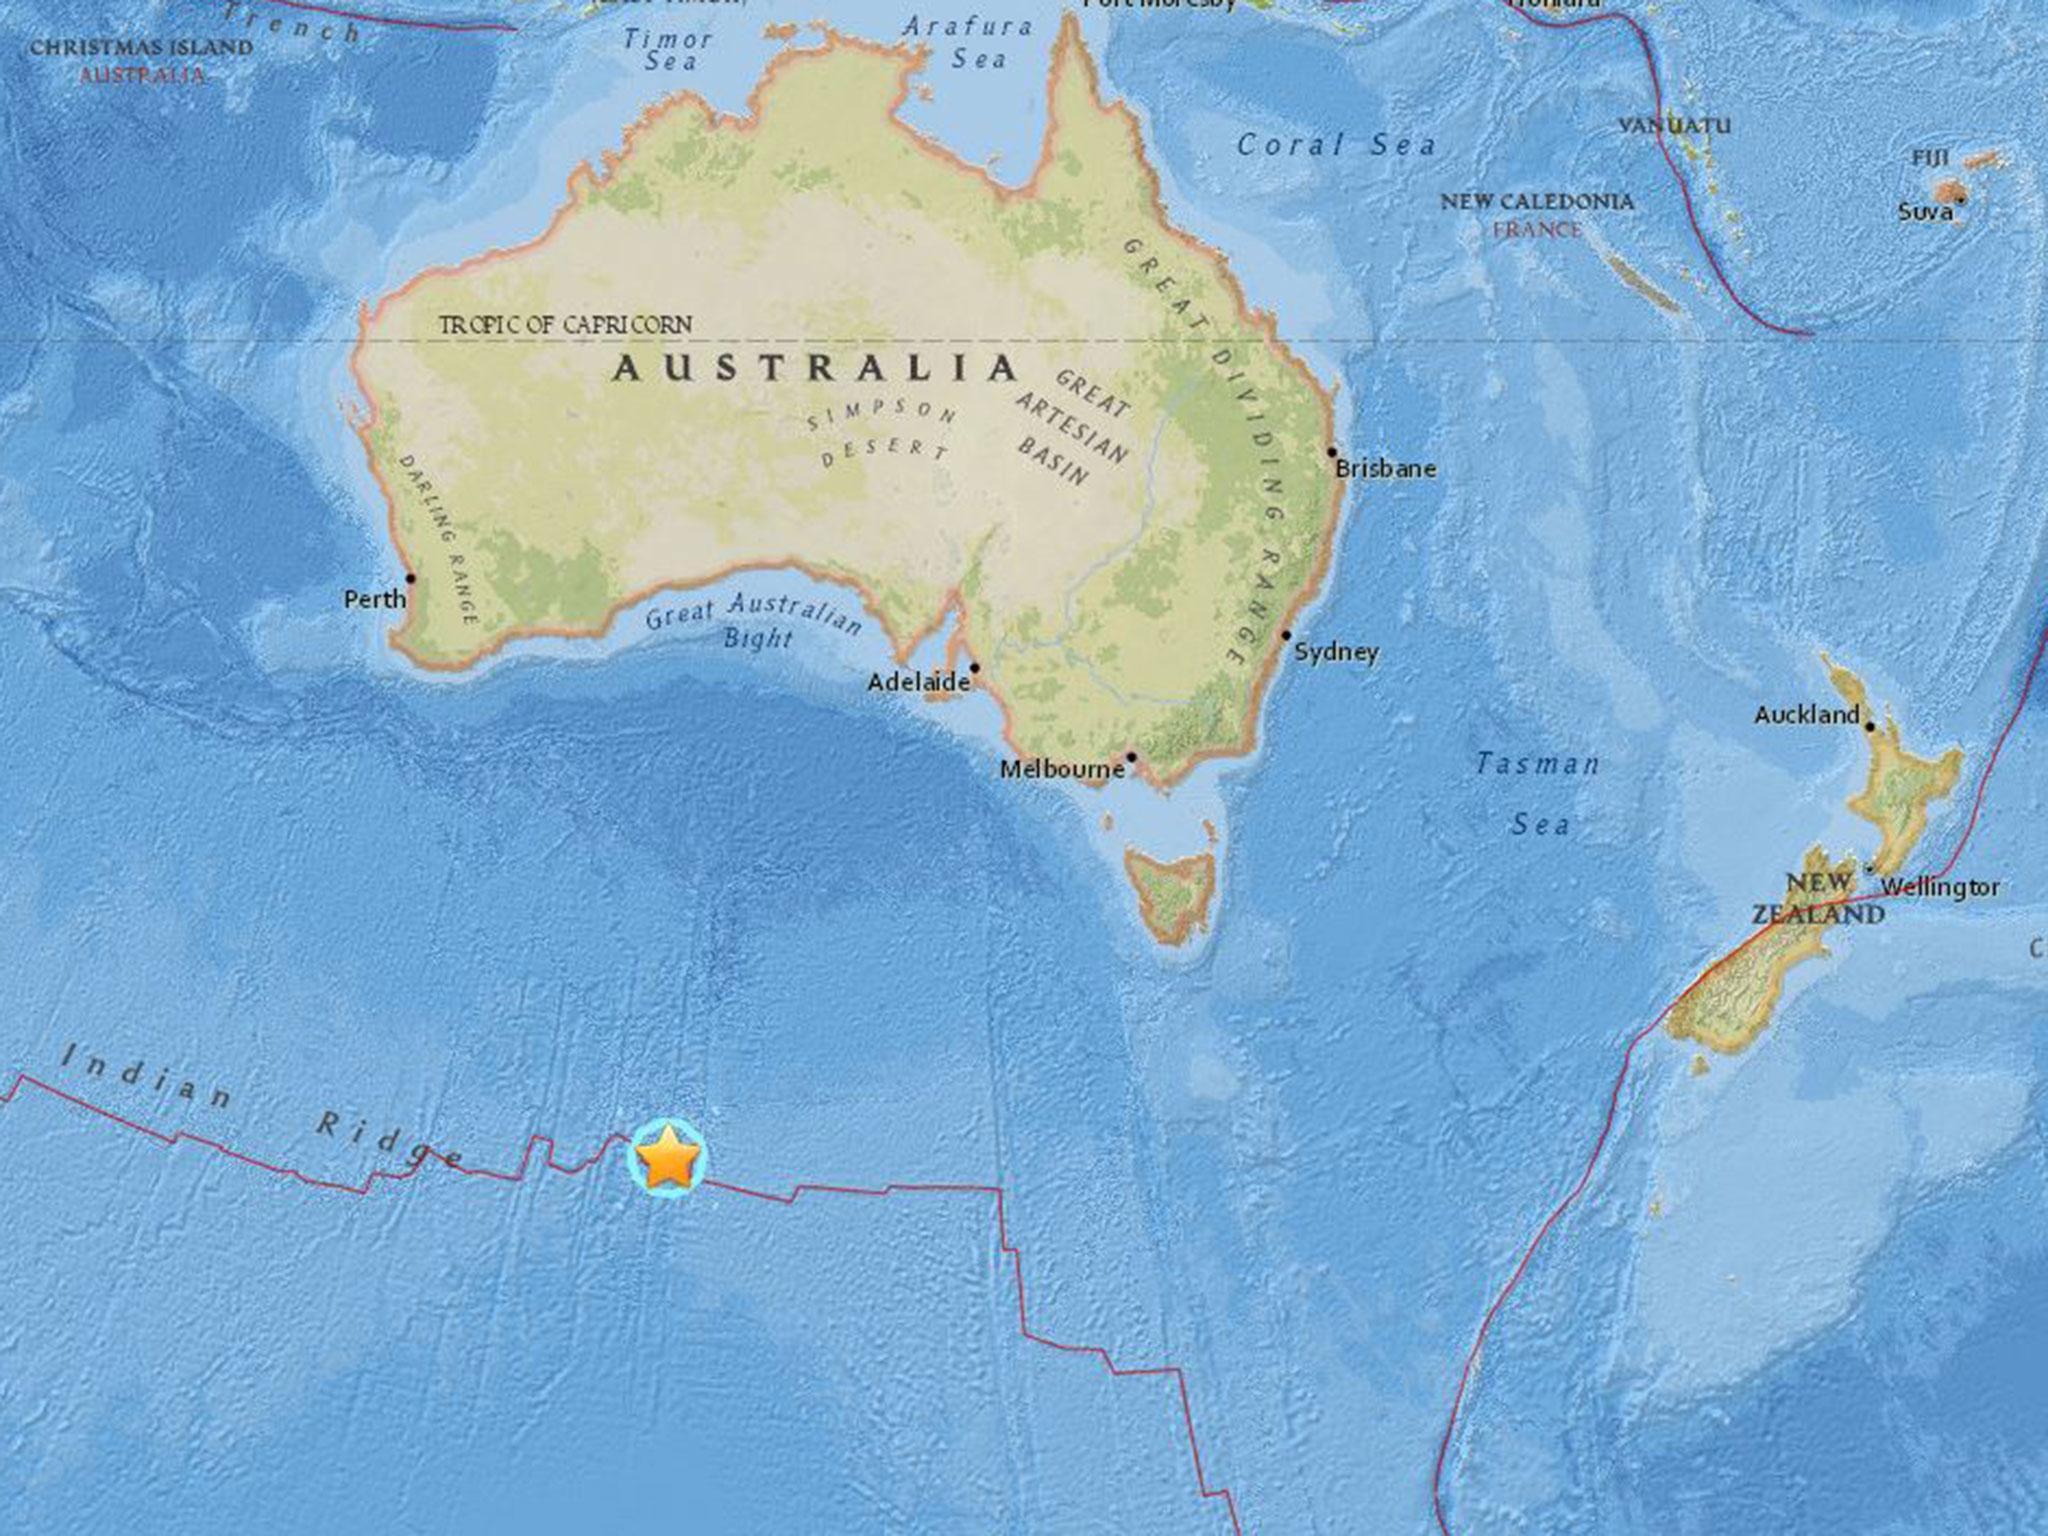 earthquake in australia Australia also averages an ml 55 every two years and an ml 60 every five years australia's most damaging earthquake occurred at newcastle nsw in 1989 when an ml 56 earthquake resulted in 13 deaths, 150 injuries and $3 billion in damage.